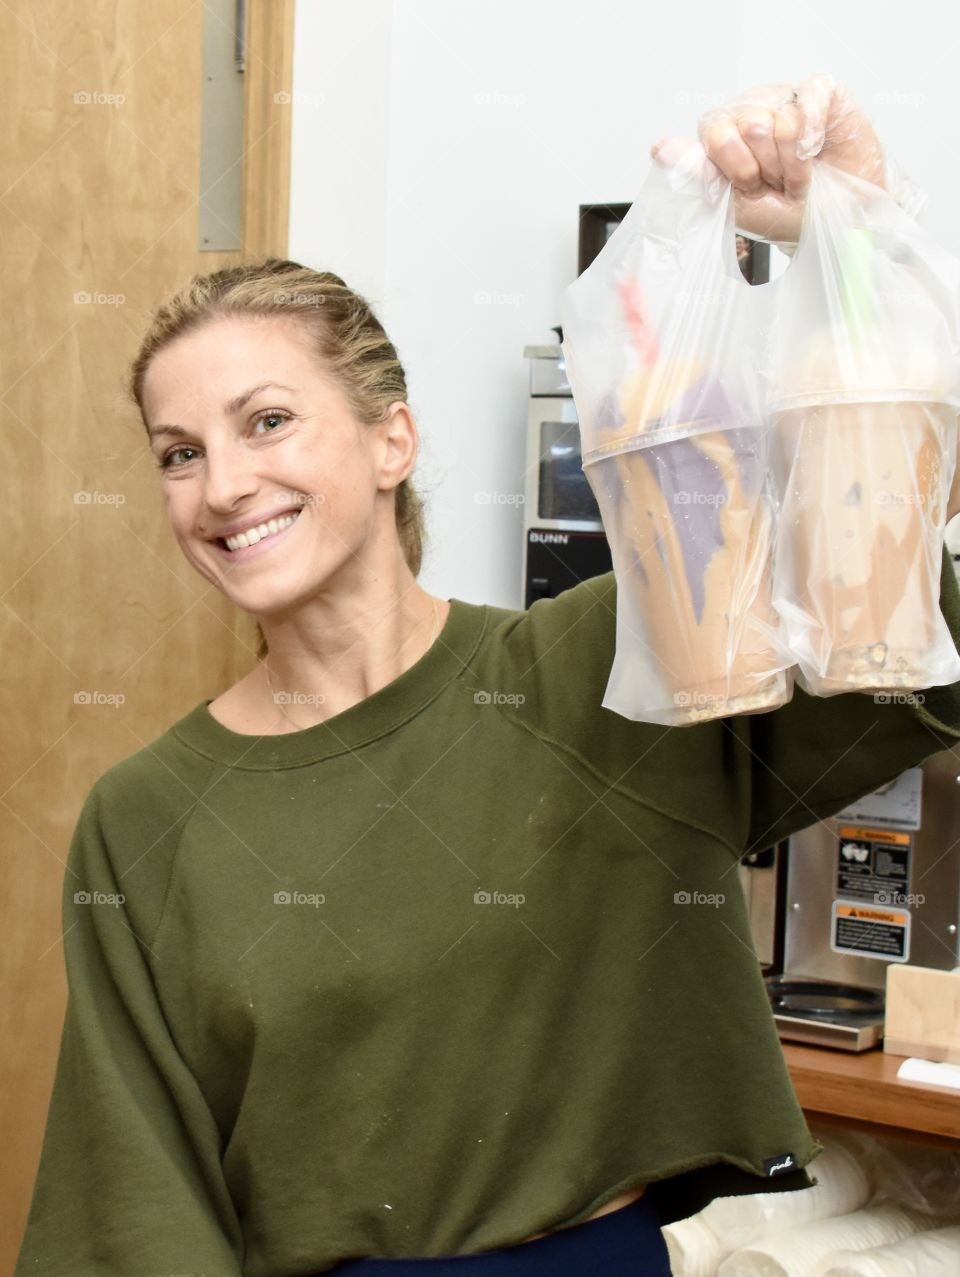 A woman who loves her job holding up smoothies